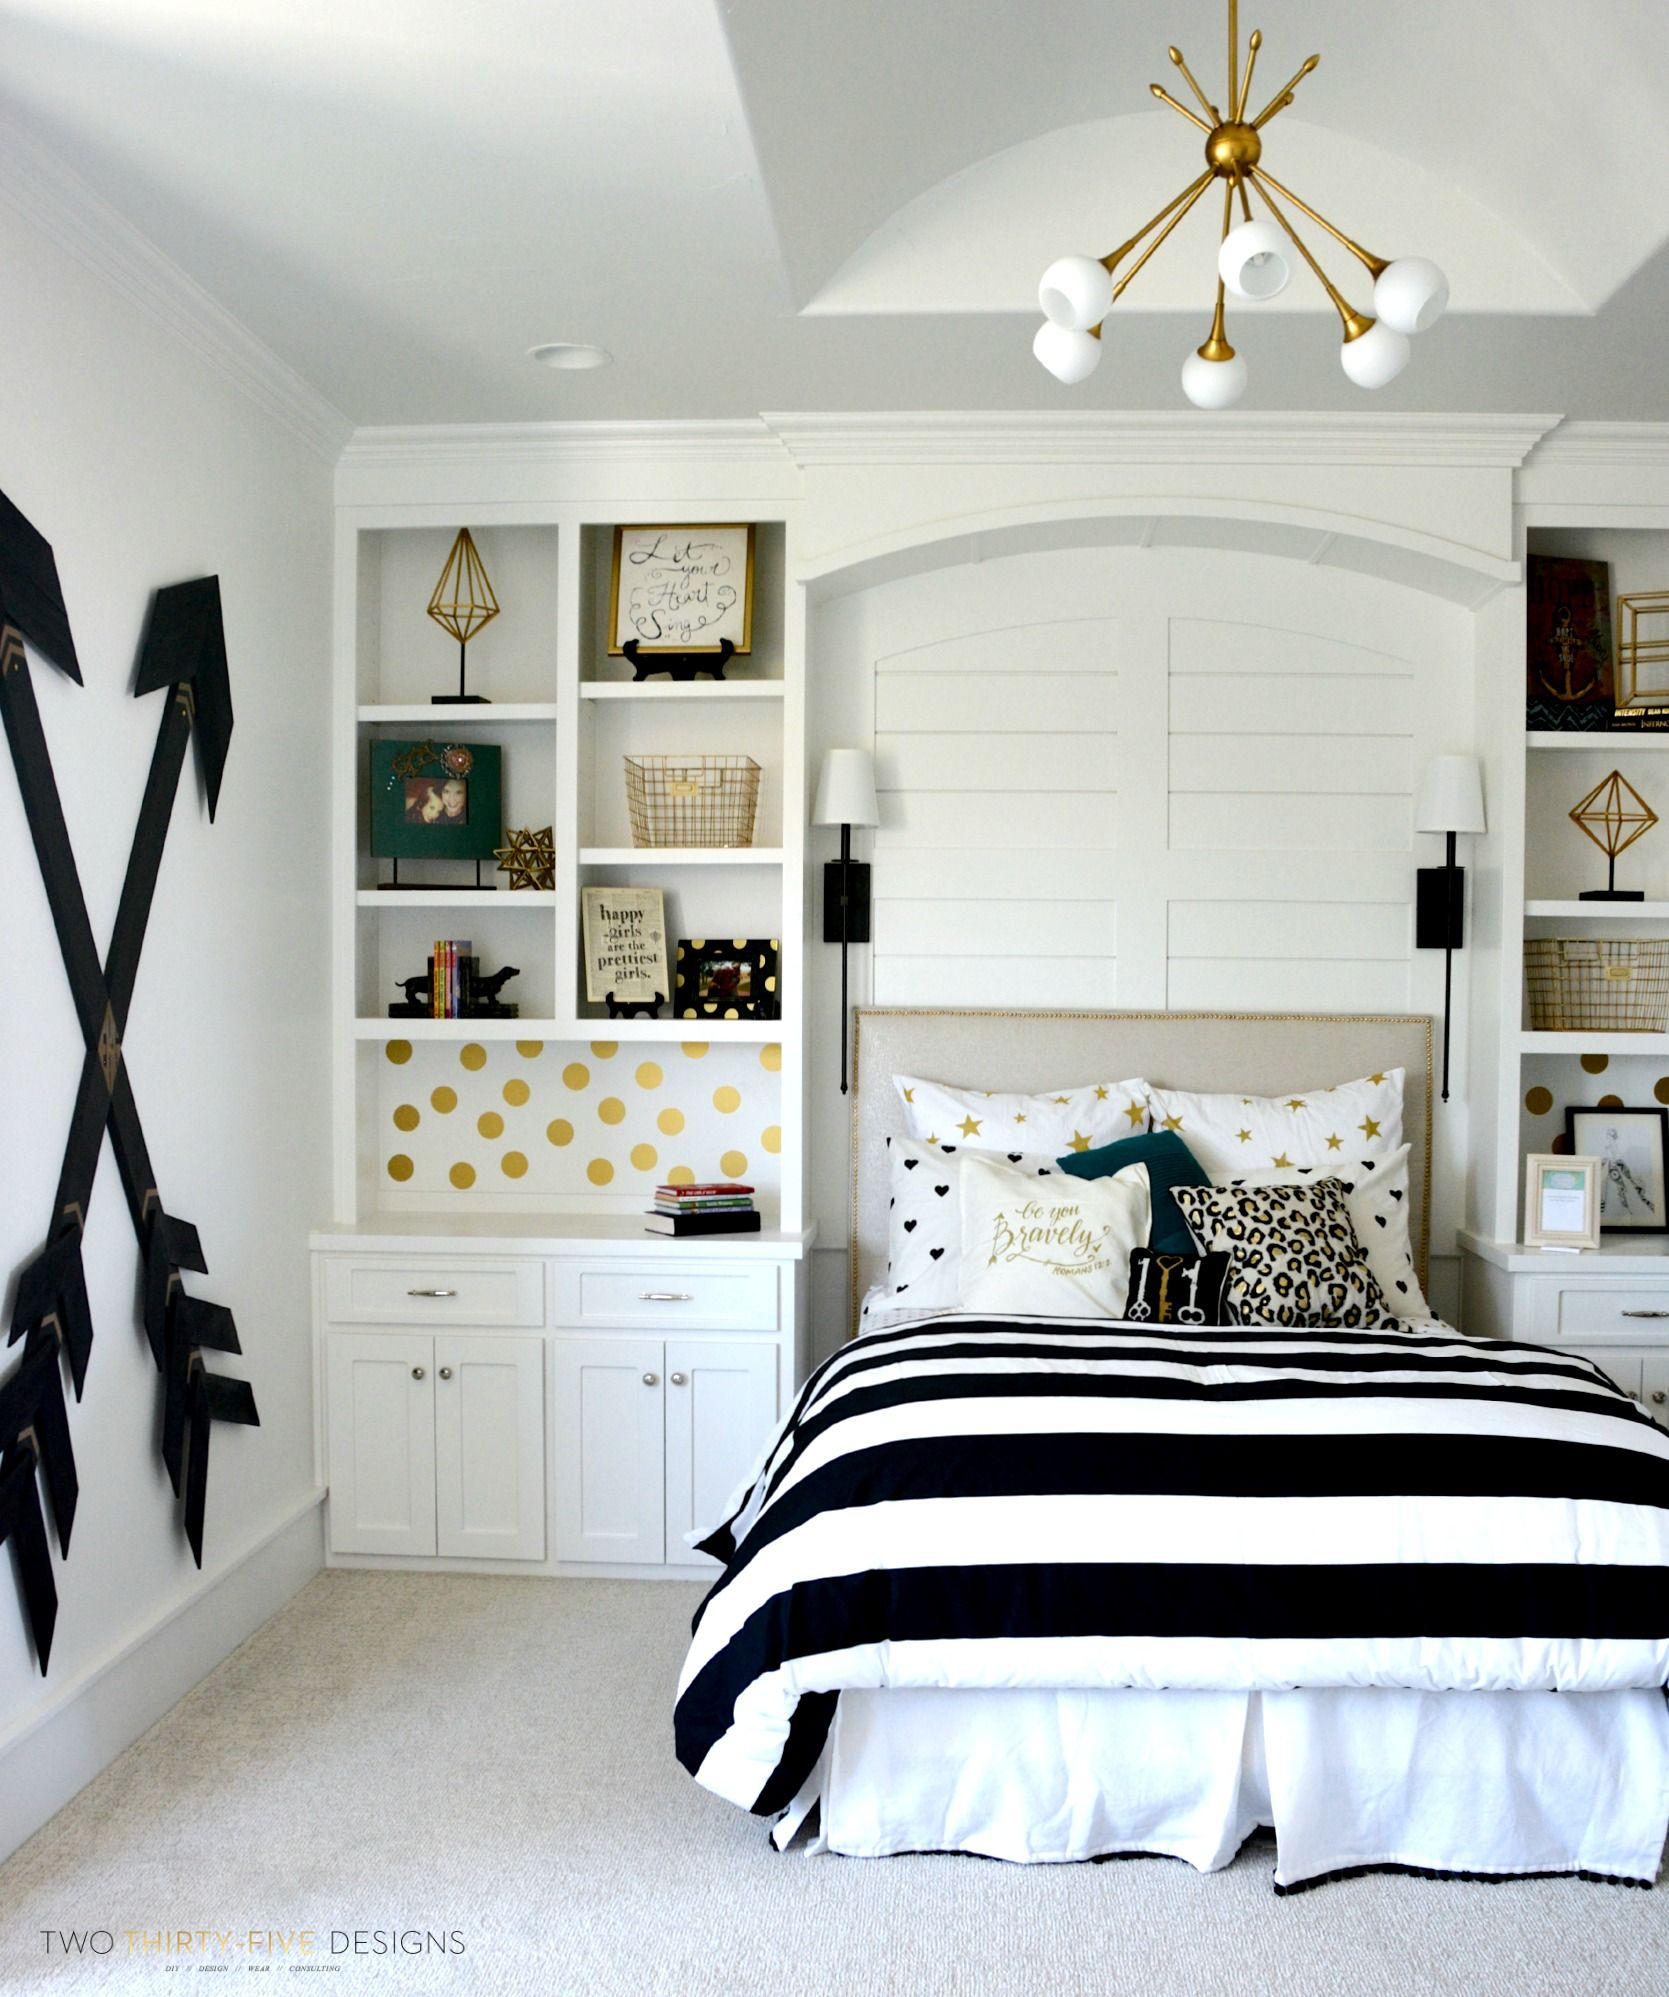 Black and white bedroom ideas for teenage girls - Pottery Barn Teen Girl Bedroom With Wooden Wall Arrows By Two Thirty Five Designs